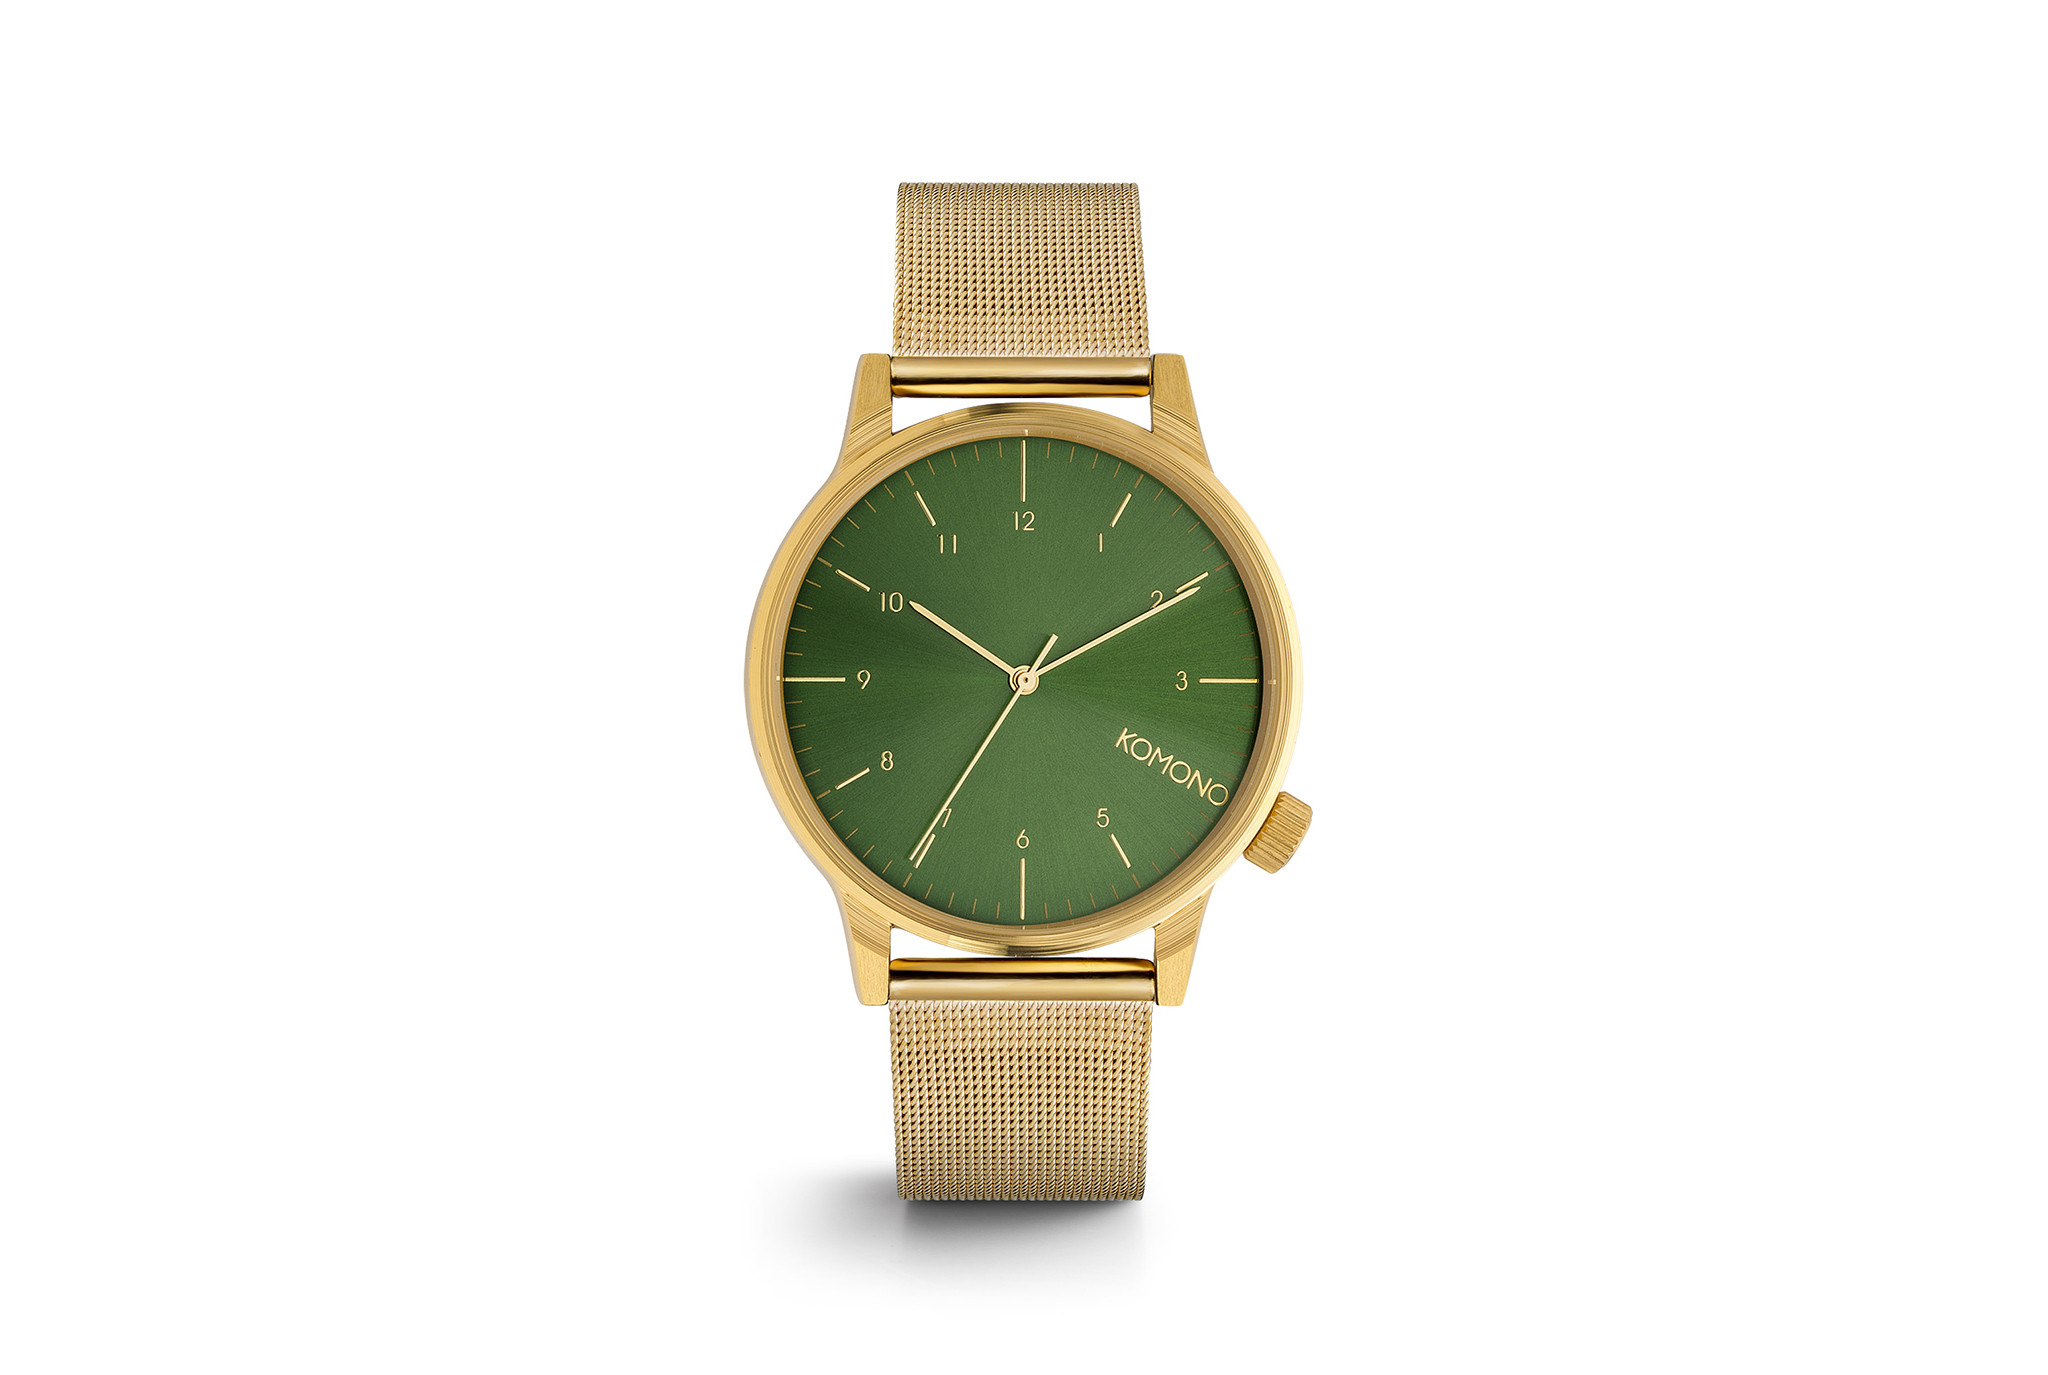 https://shop.komono.com/products/winston-royale-gold-green